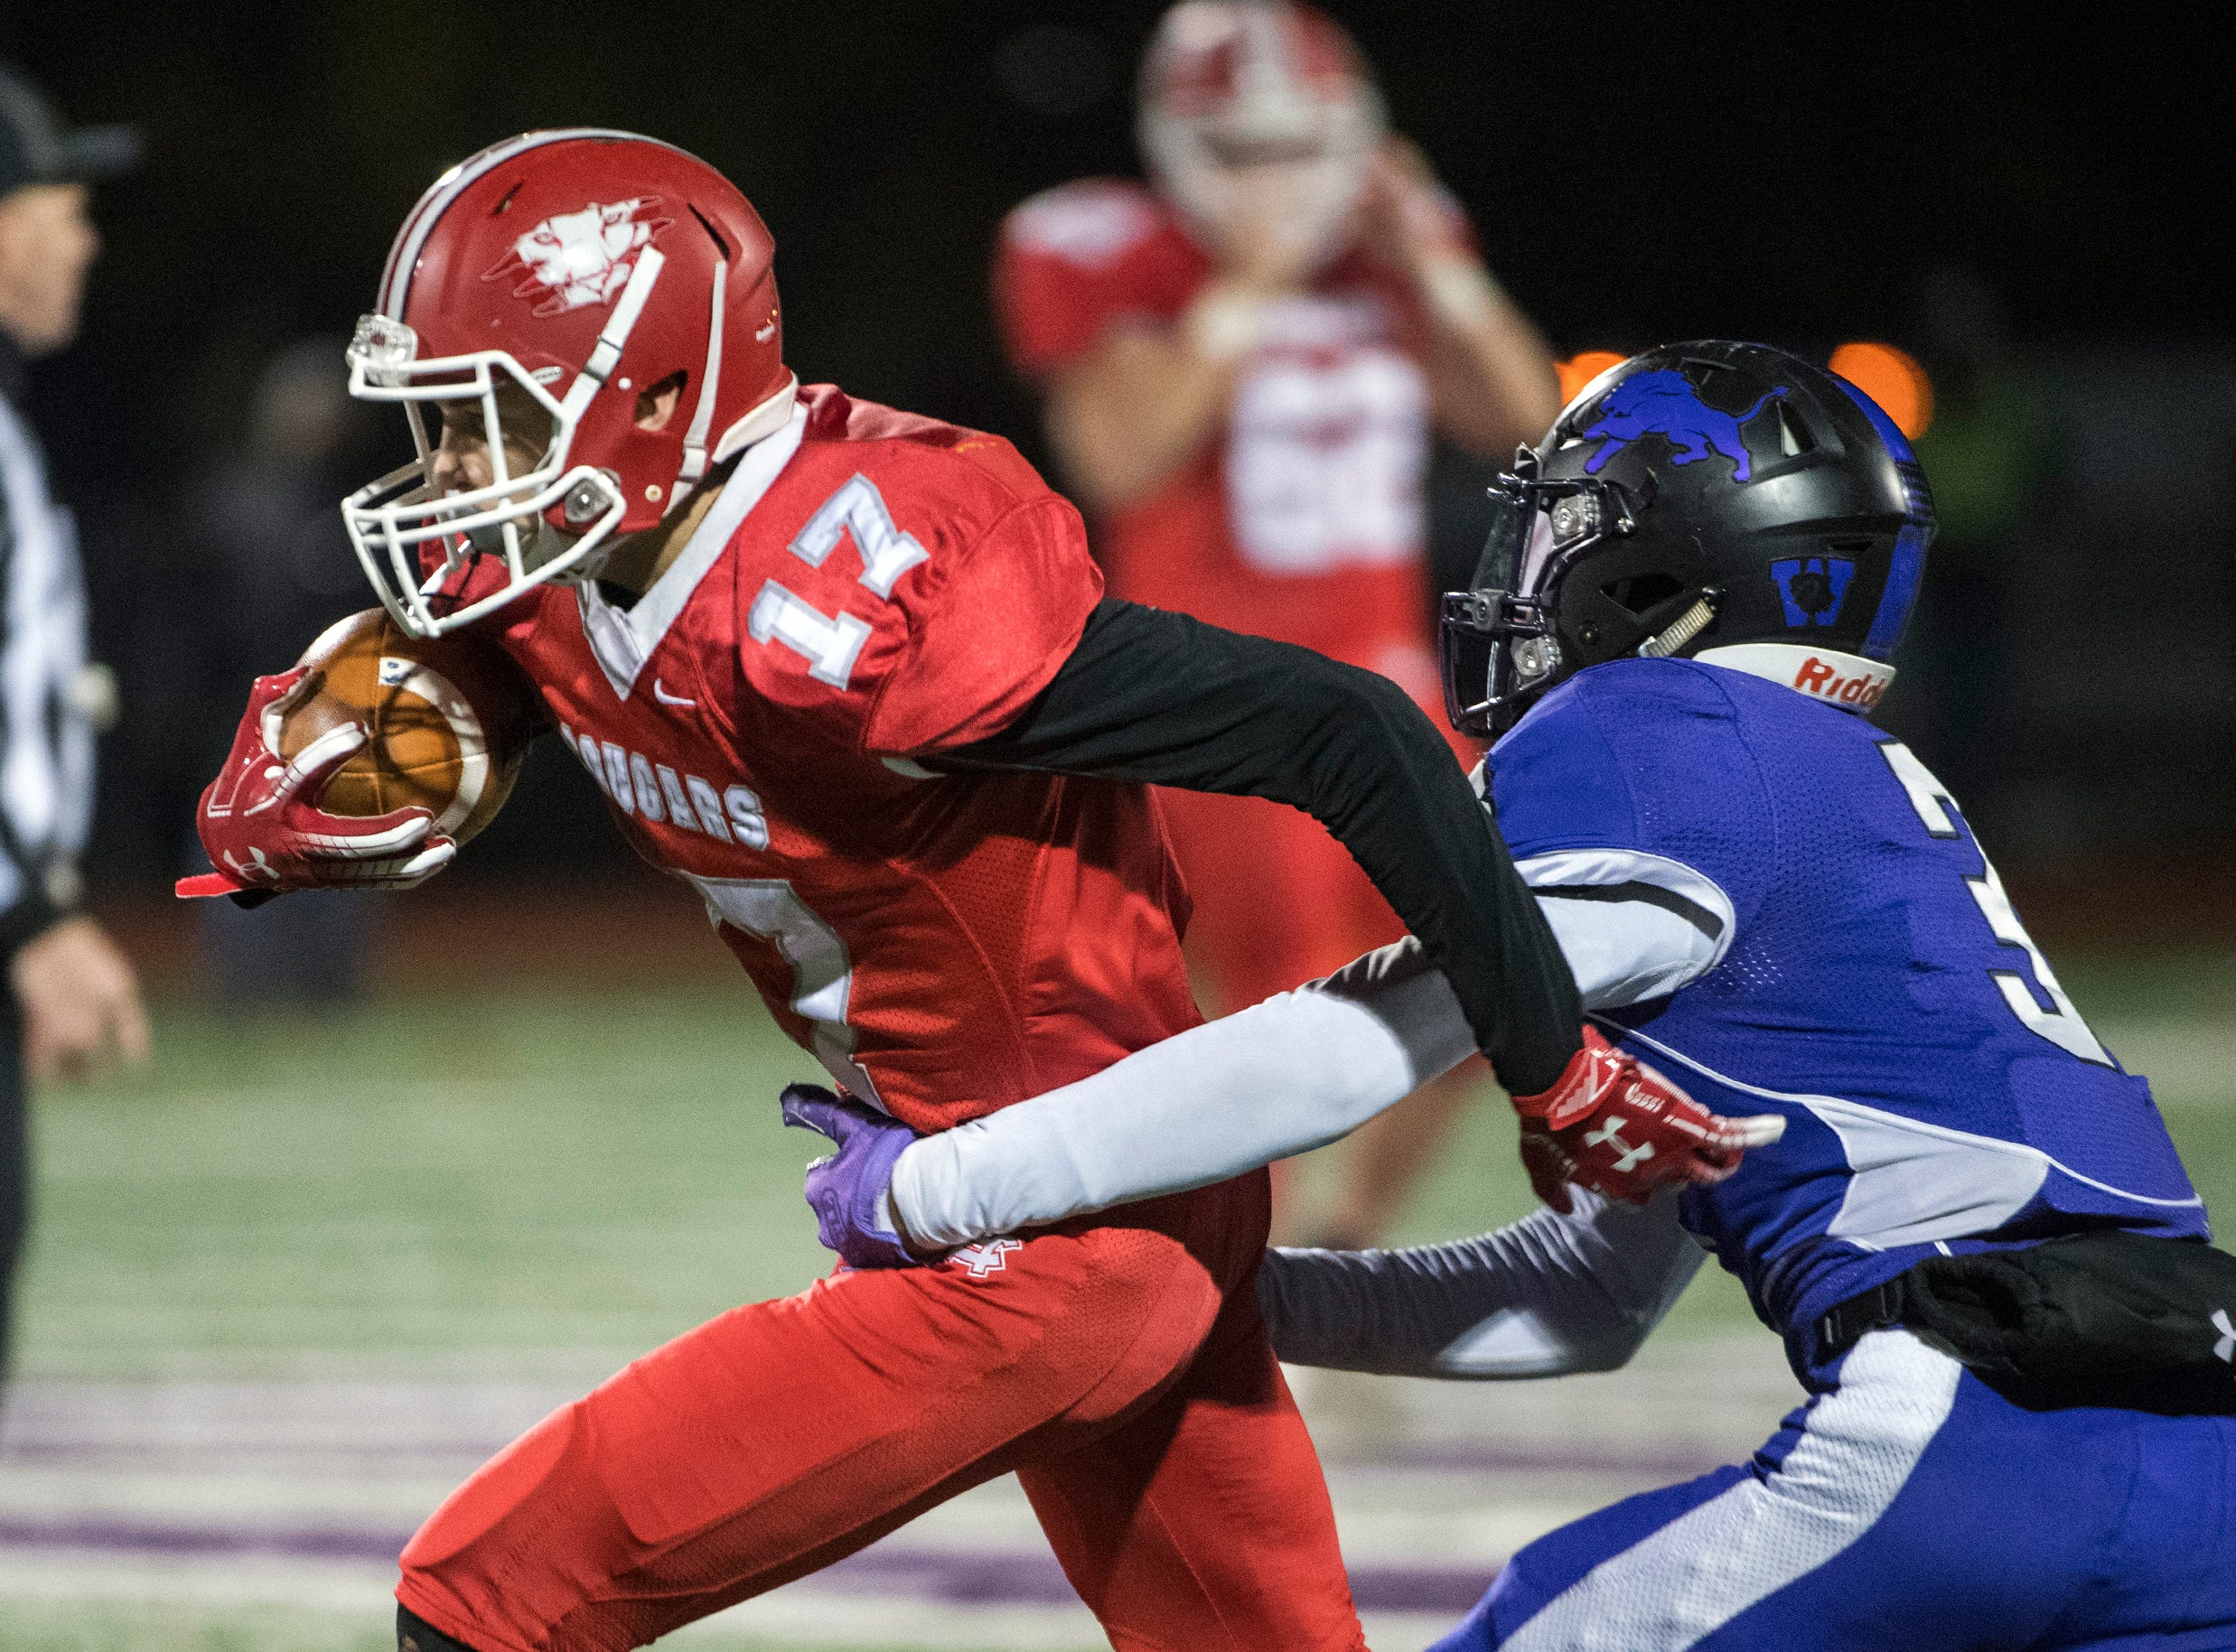 East's Sean Welsh (17) rushes during an annual East-West game Wednesday, Nov. 21, 2018 at Cherry Hill West High School in Cherry Hill, N.J. West won 22-7.